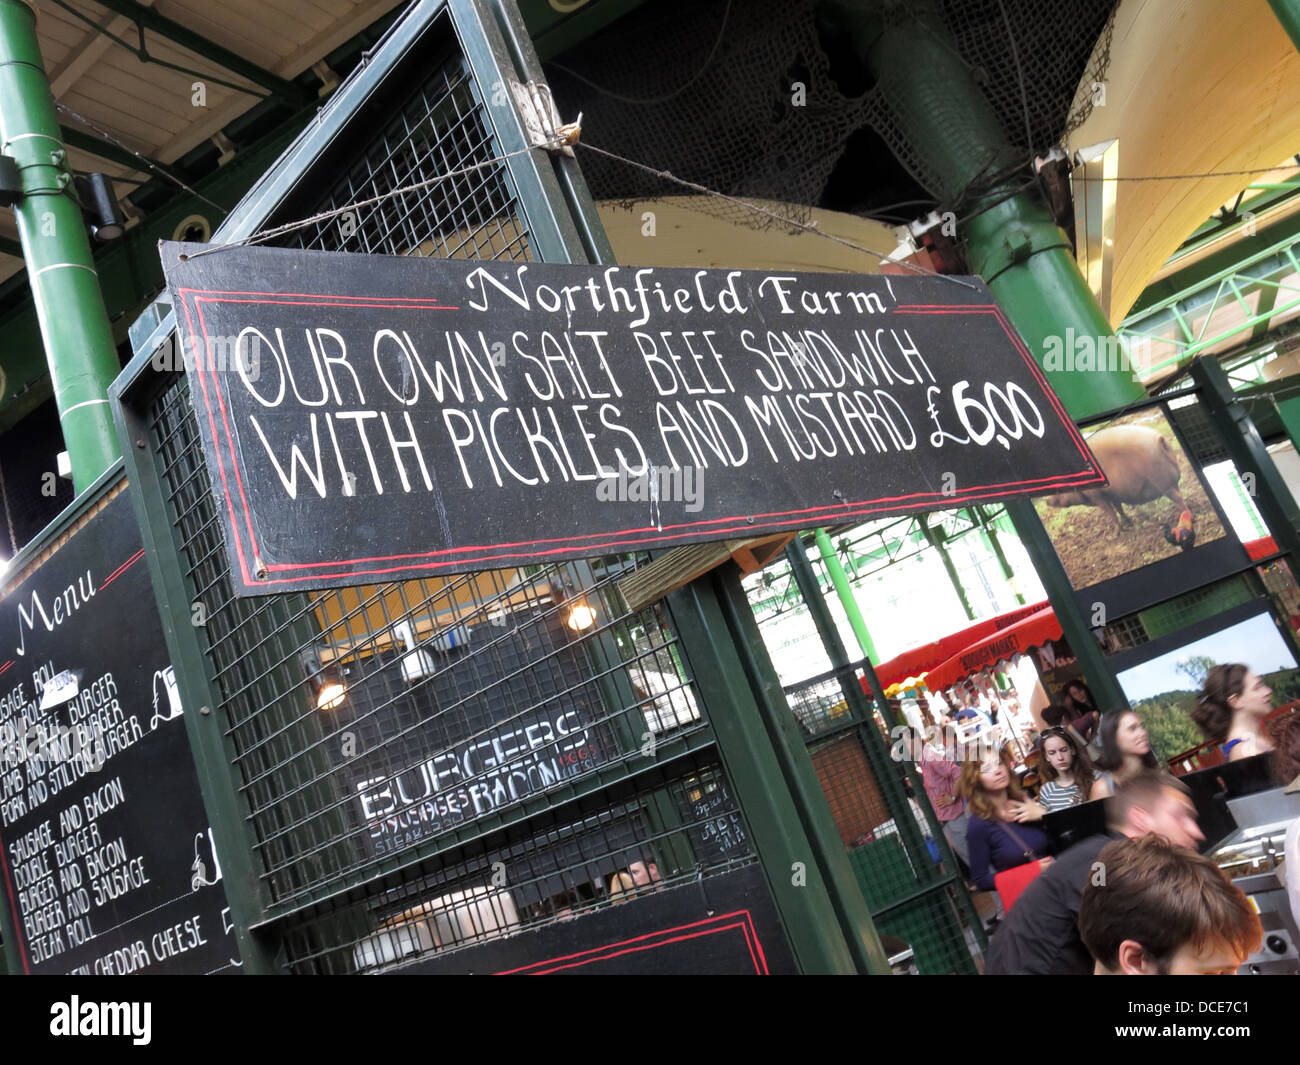 Northfield Farm stall on Borough Market , Southwark , London , England . Advertising quality salt beef sandwiches - Stock Image